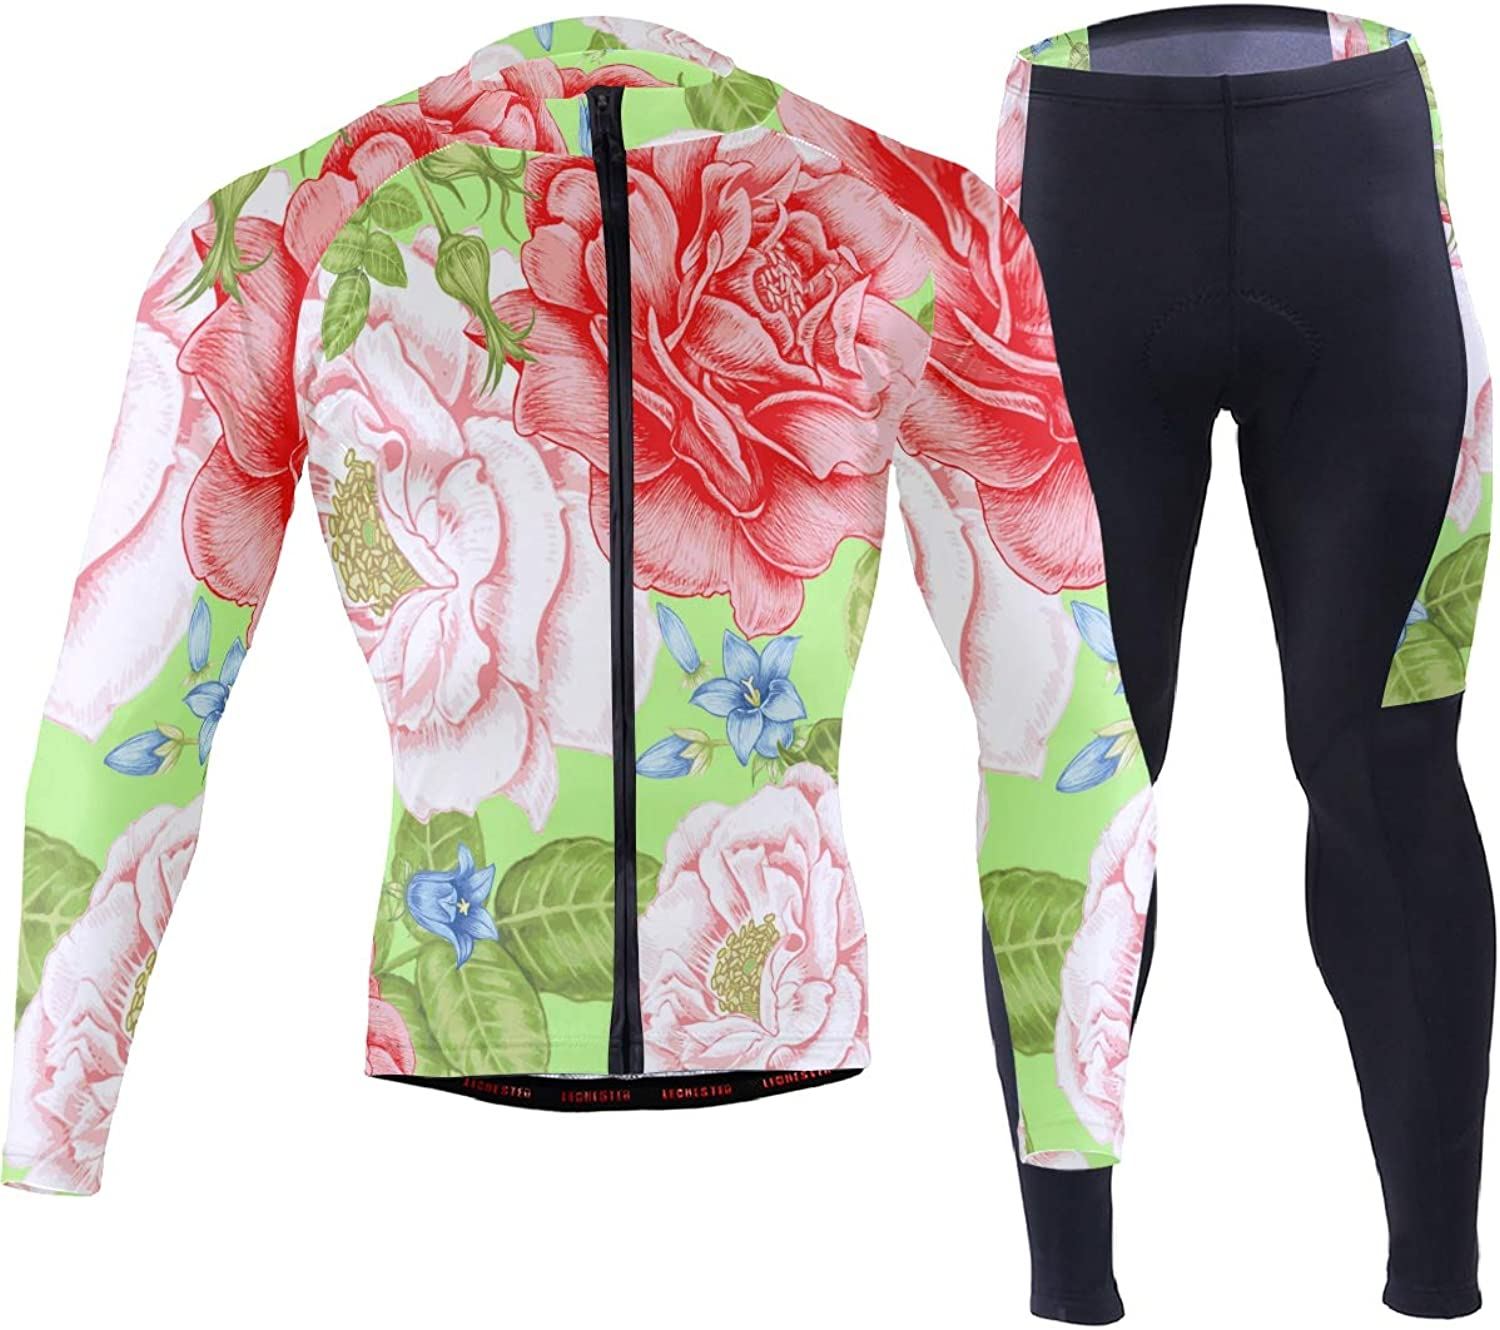 FAJRO colorful Flowers Sportswear Suit Bike Outfit Set Breathable Quick Dry 3D Padded Pants